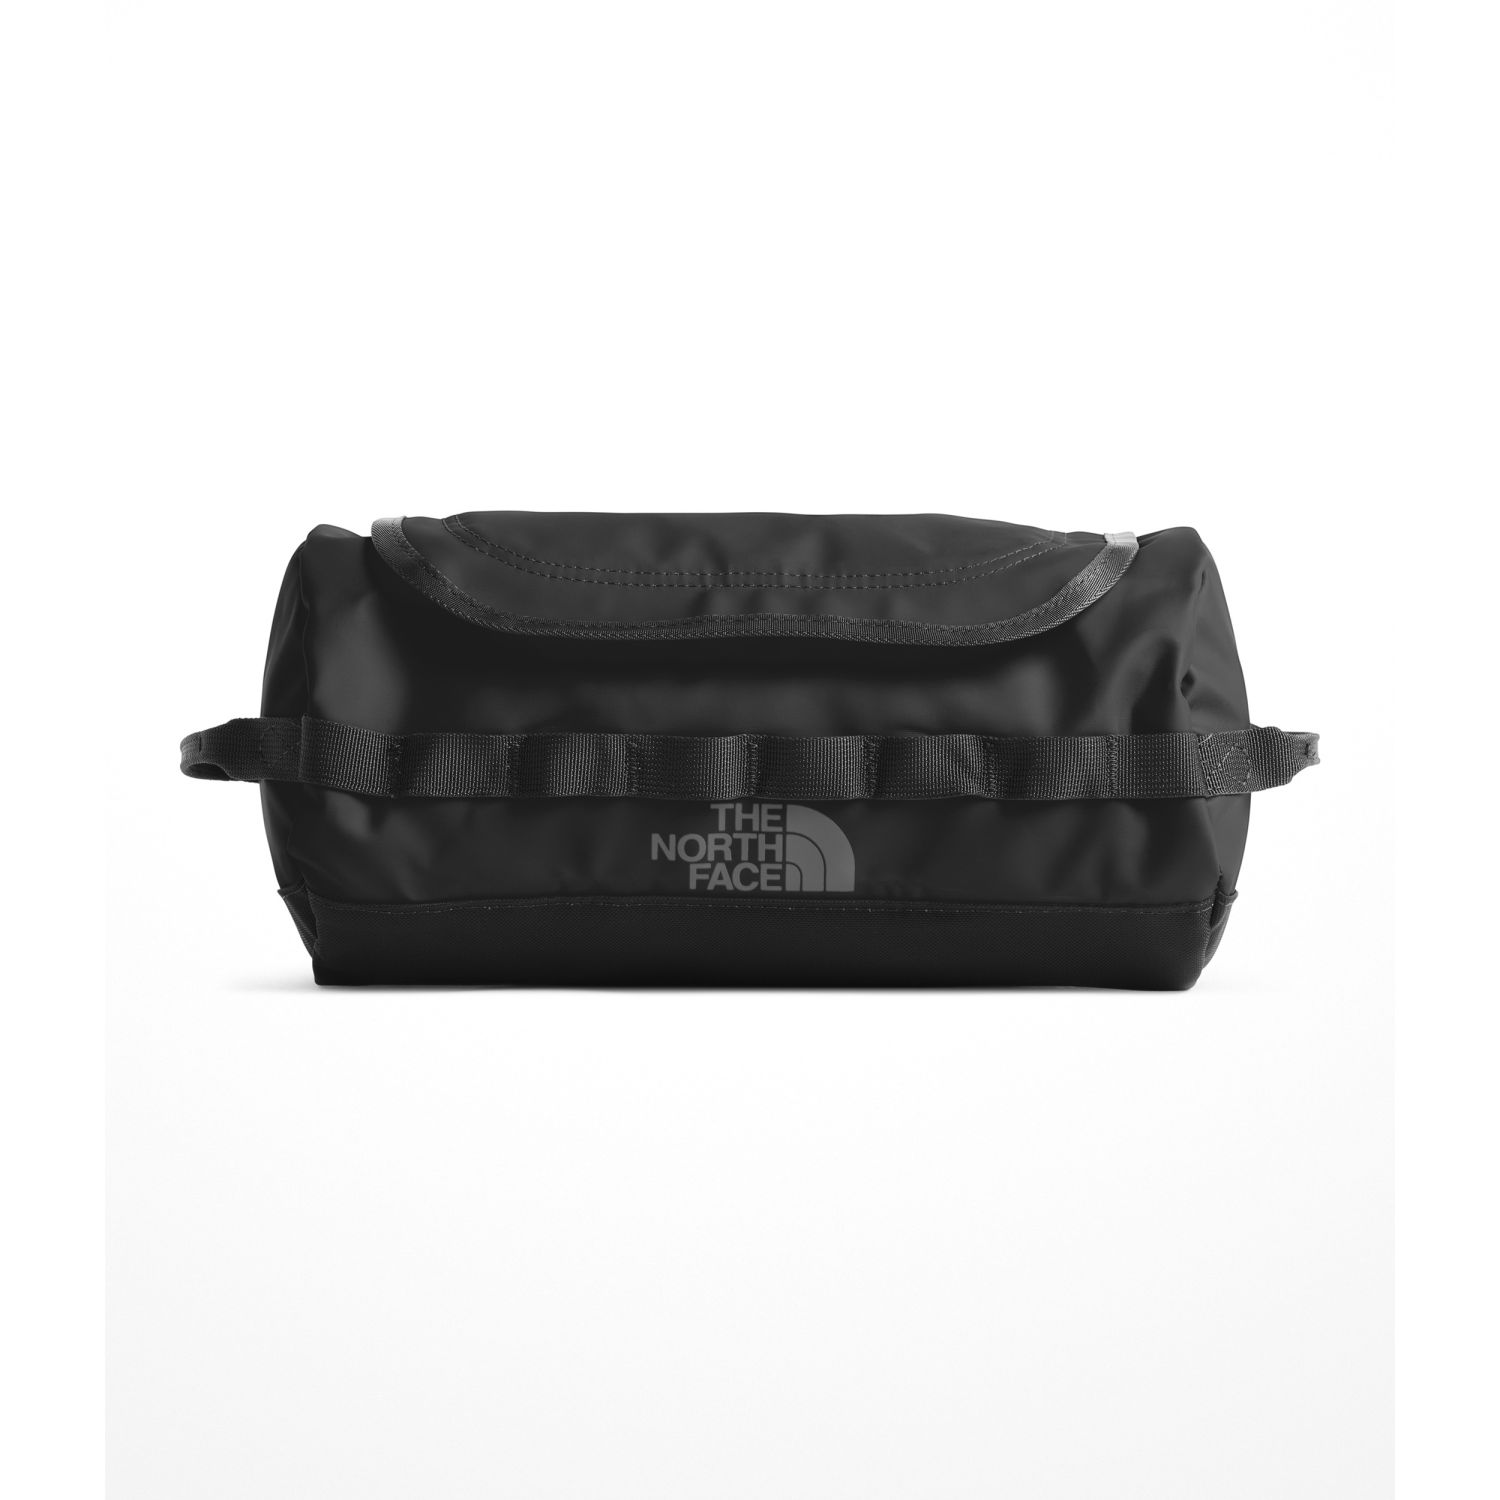 The North Face Bc Travel Canister- L Negro Neceseres